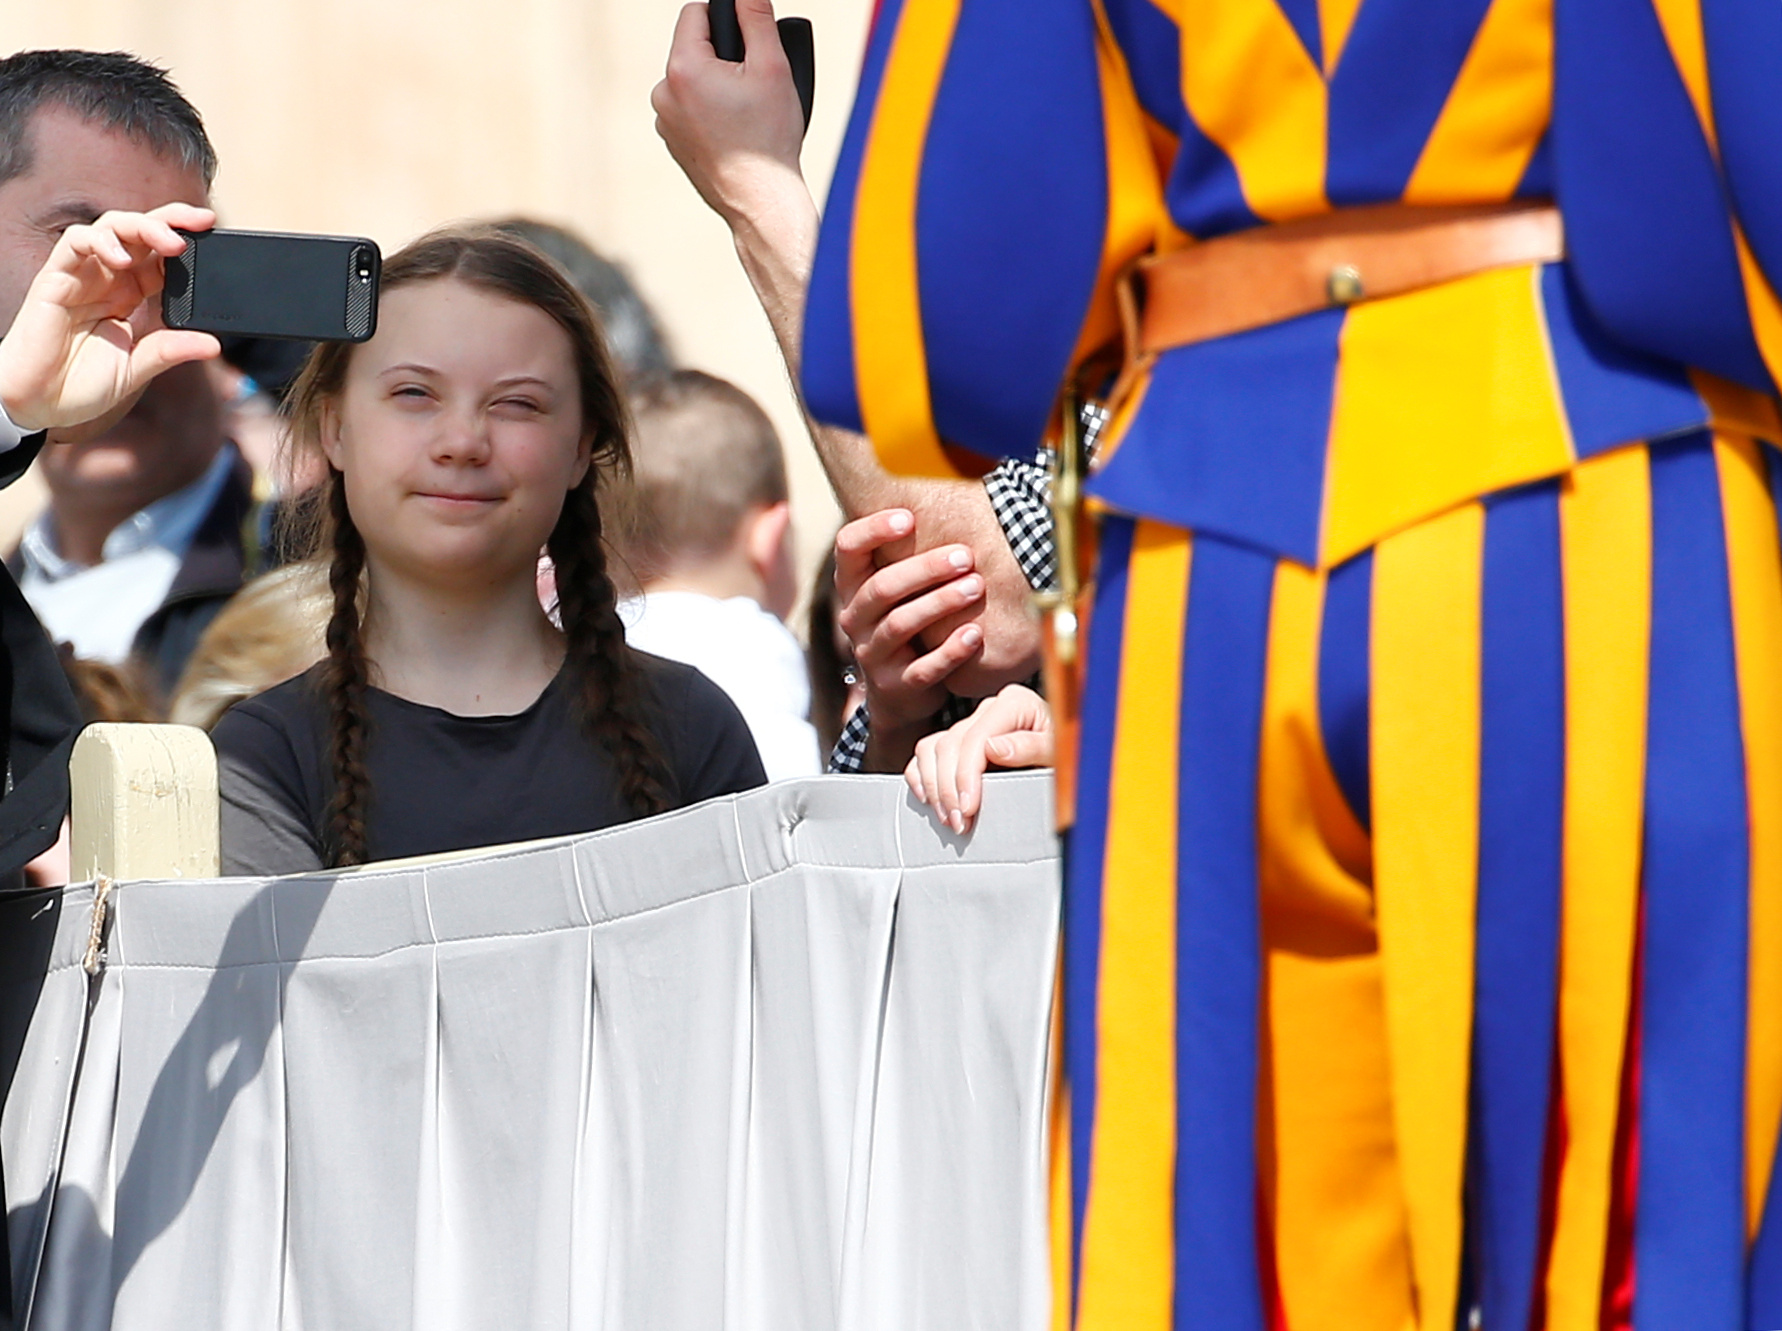 2019-04-17T101522Z_1438836347_RC1287480830_RTRMADP_3_CLIMATE-CHANGE-YOUTH-GRETA-POPE